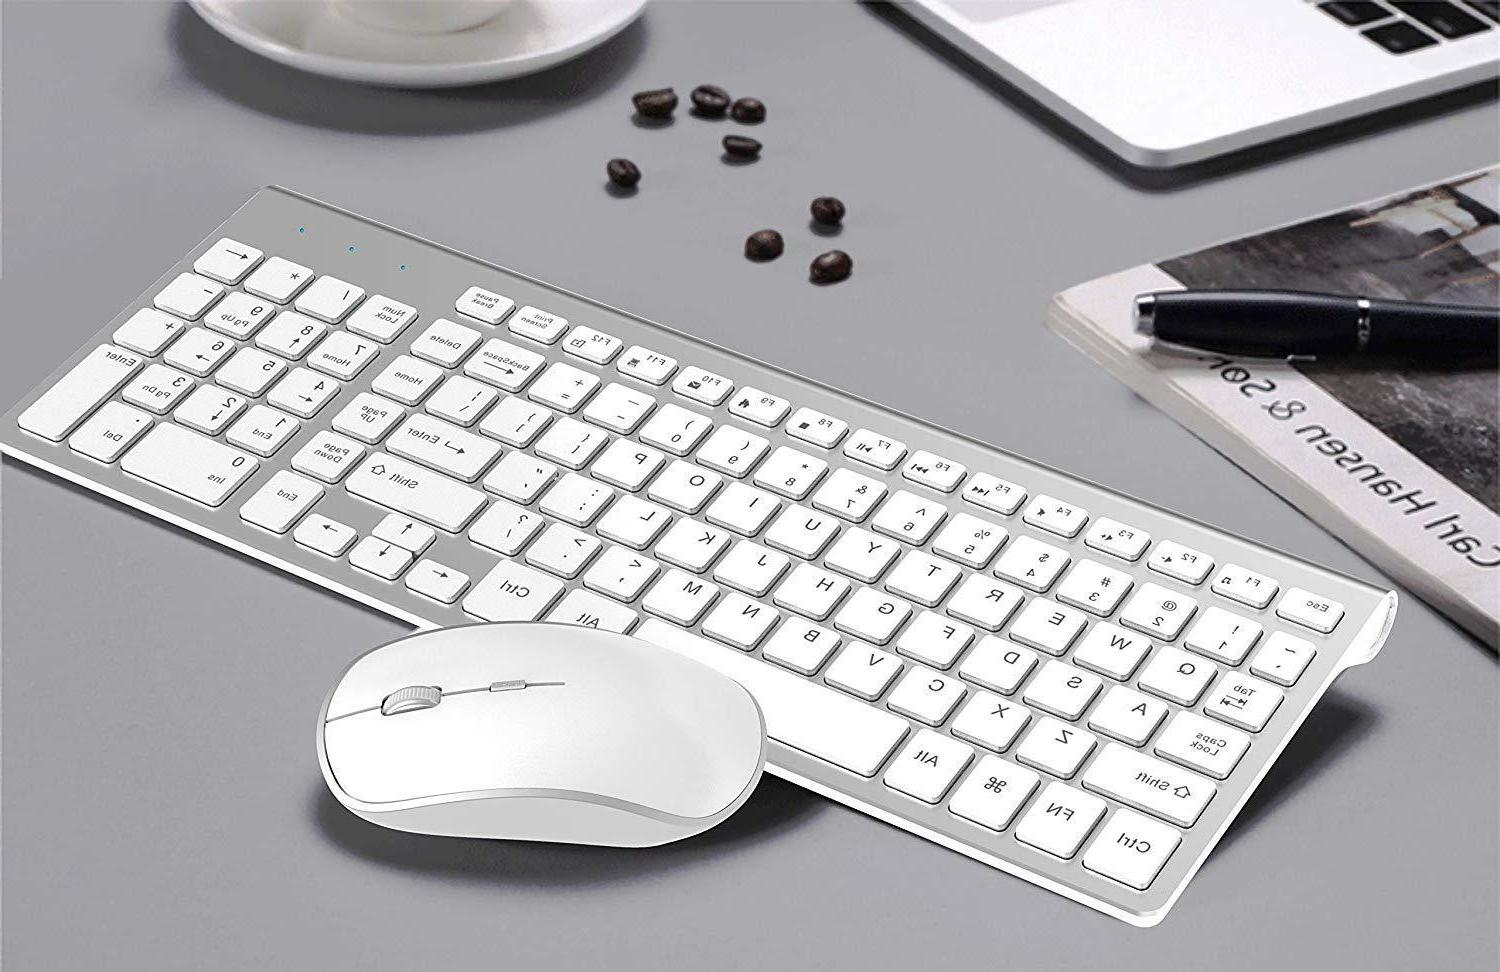 Wireless Slim Keyboard And Mouse Computer Tablet Accessories